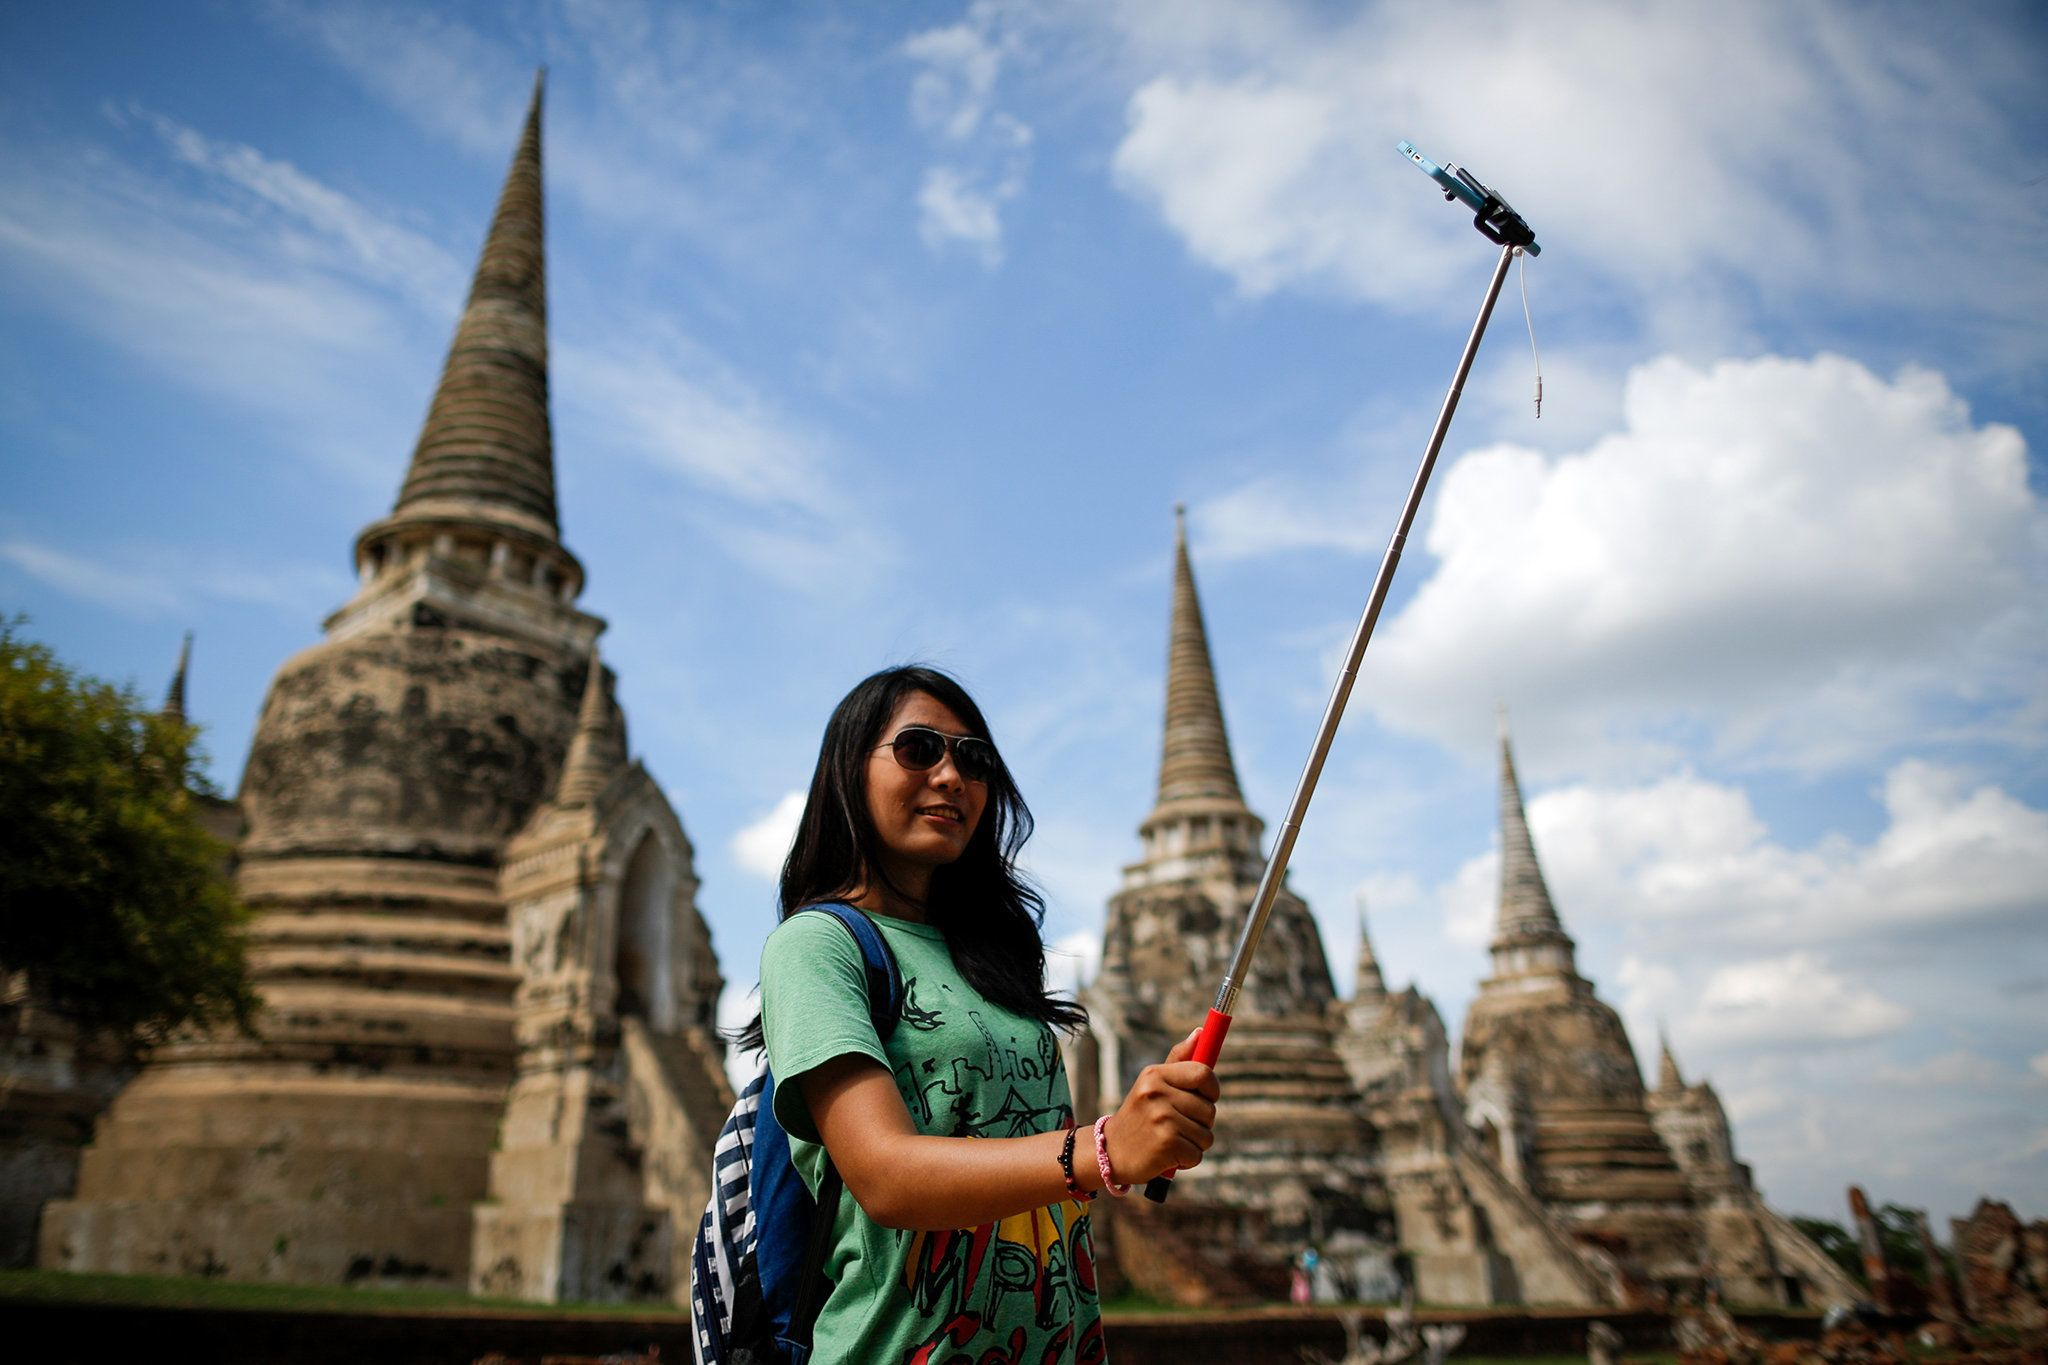 A tourist snaps a picture of herself with a selfie stick at Wat Phra Sri Sanphet, a temple in the ancient city of Ayutthaya, Thailand.